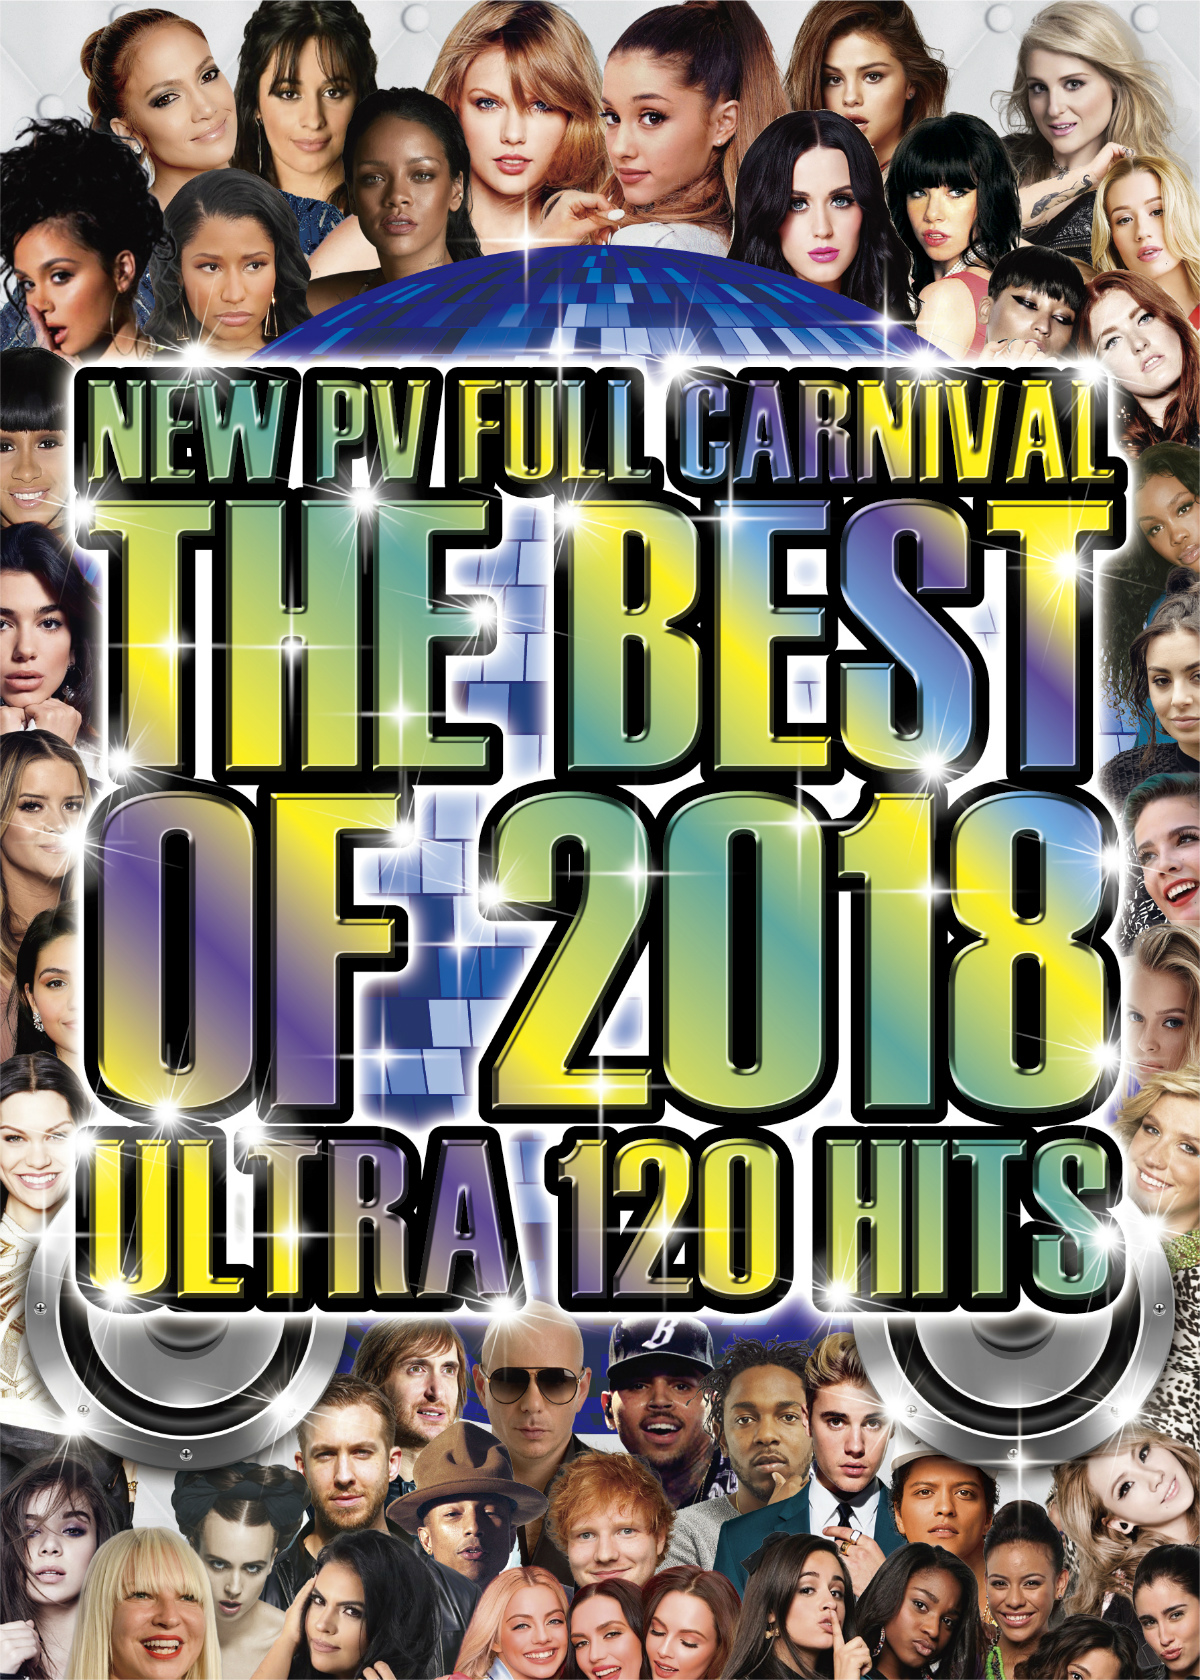 【3組】 NEW PV FULL CARNIVAL -THE BEST OF 2018 ULTRA 120 HITS-  / V.A 【[国内盤MIX DVD】